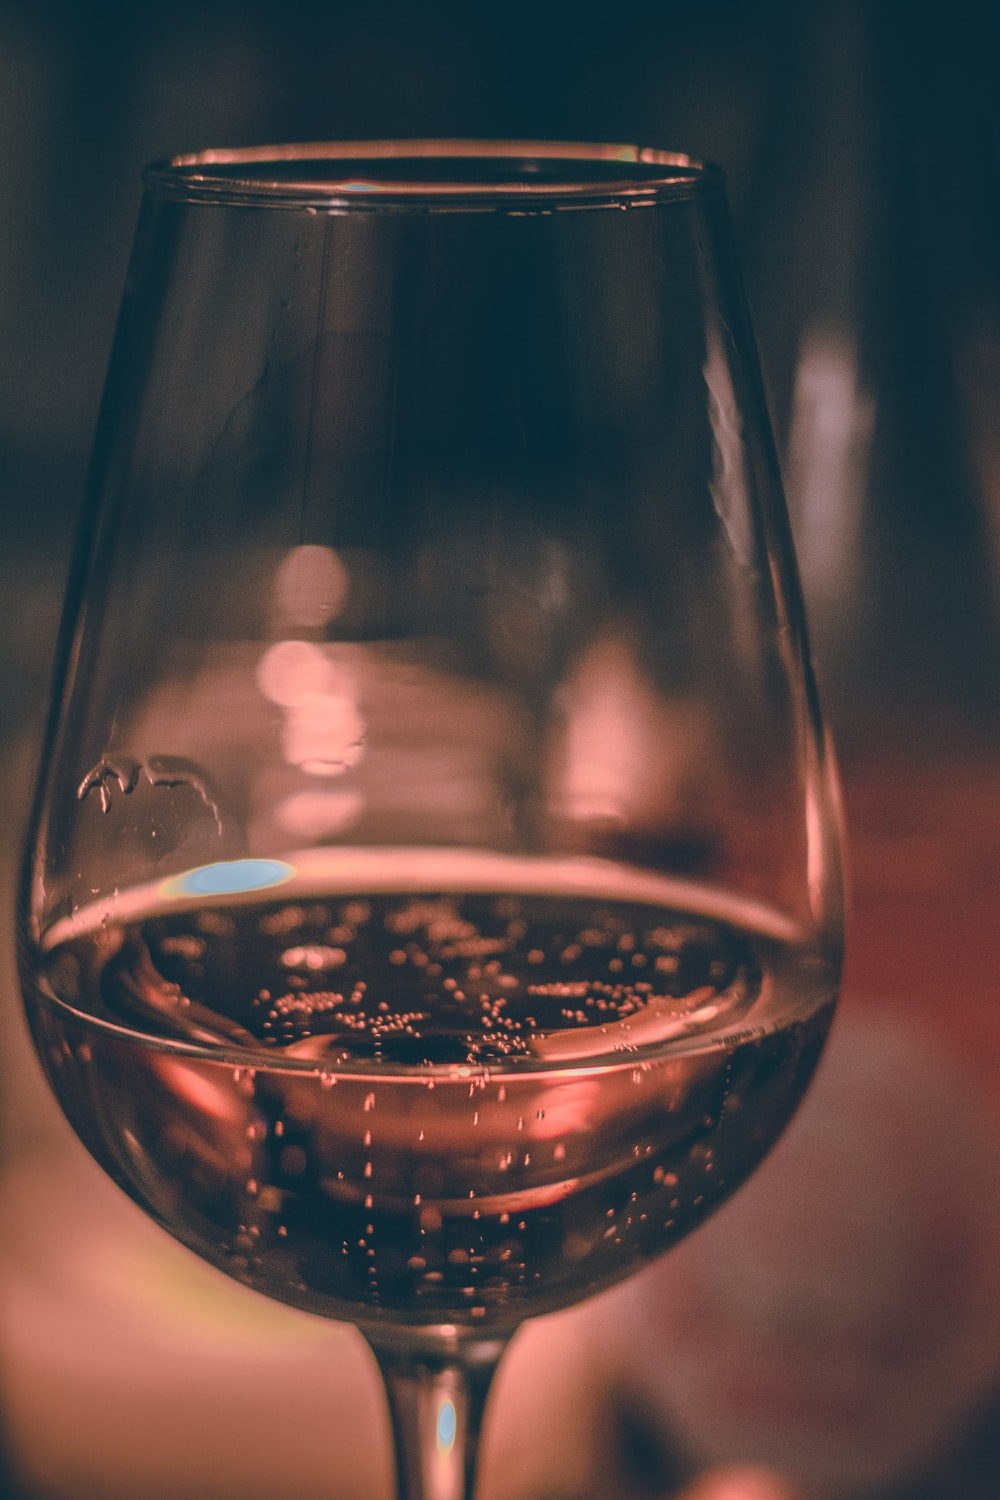 wine glass pictures download free images stock photos on unsplash